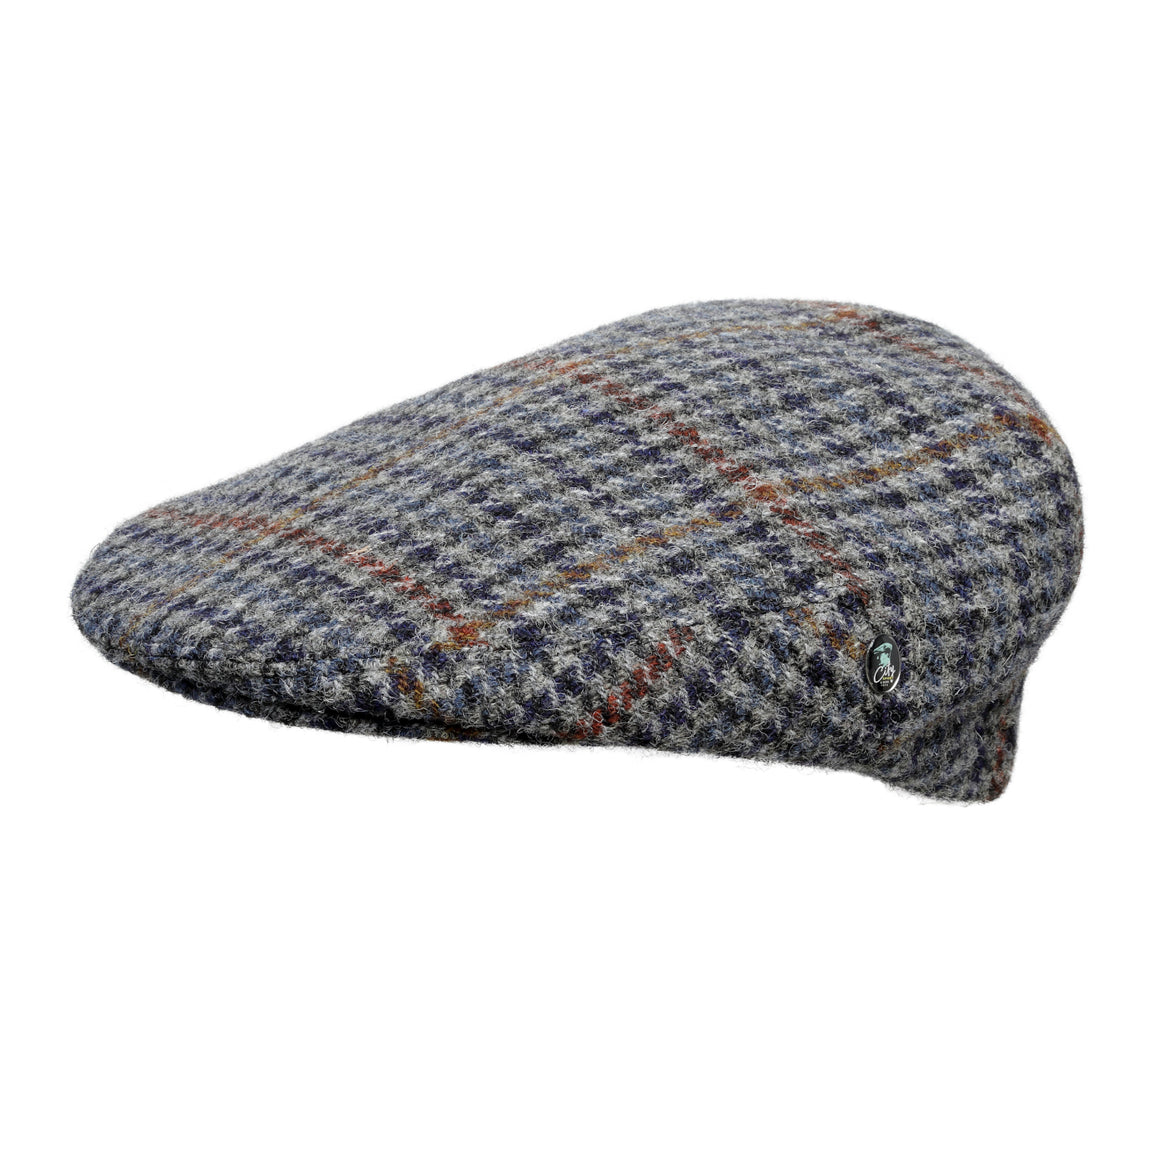 Harris Tweed wool cap | Hounds Tooth | buy now at The Cashmere Choice London